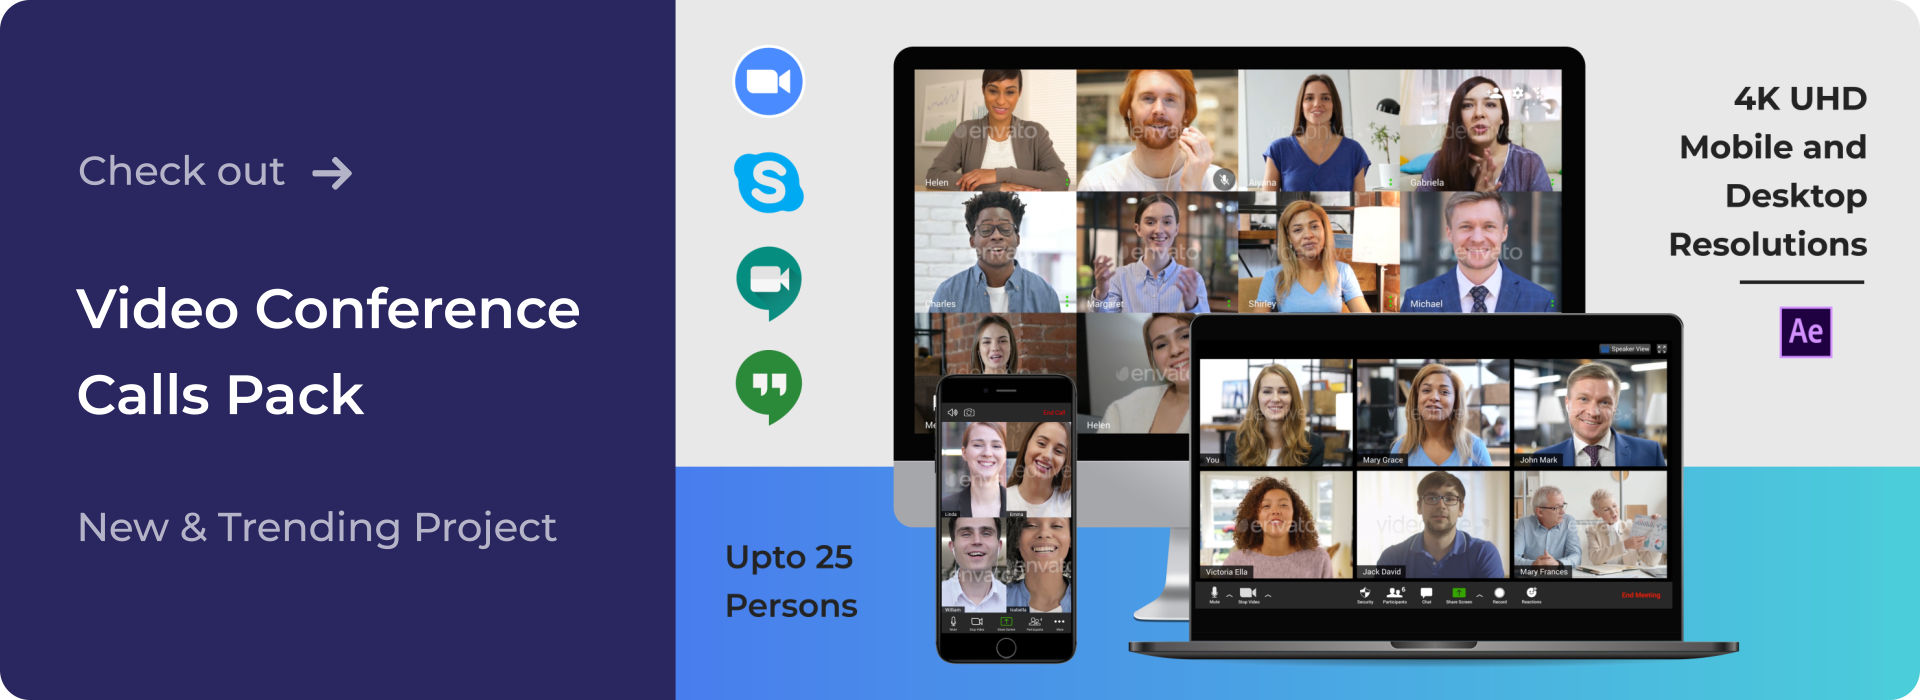 Check out Video Calls Conference Pack